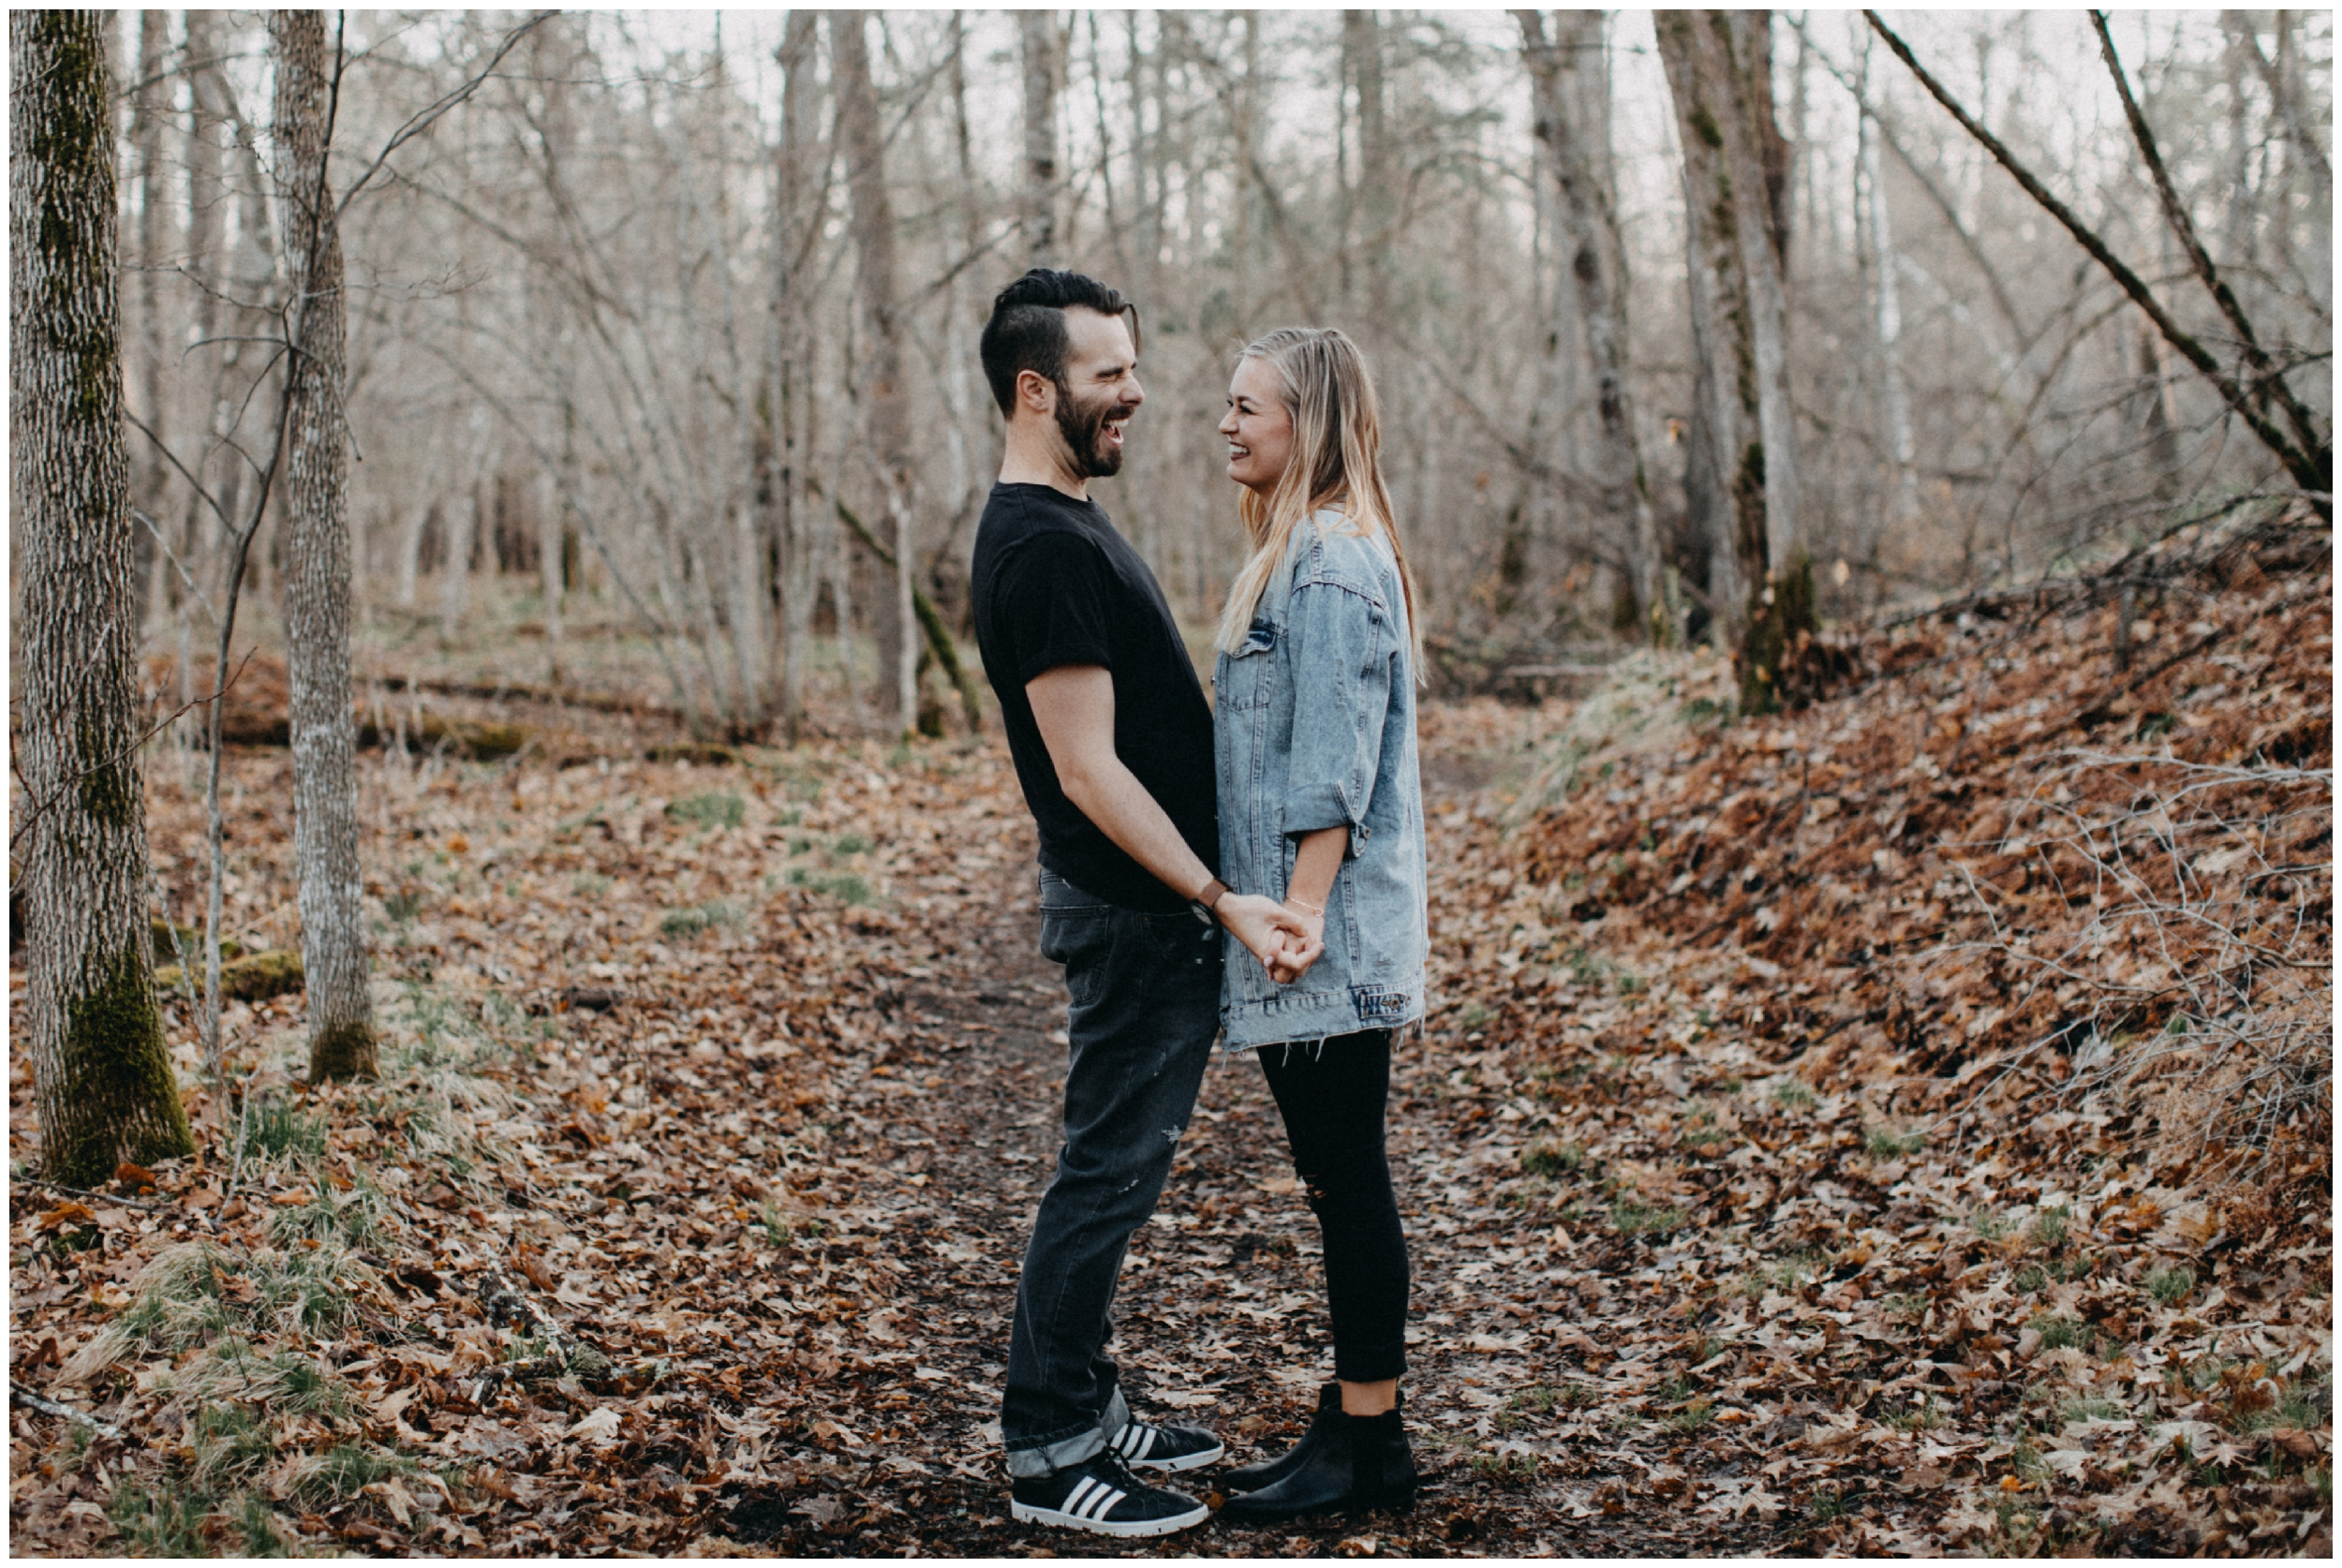 Spring forest engagement shoot in Brainerd Minnesota